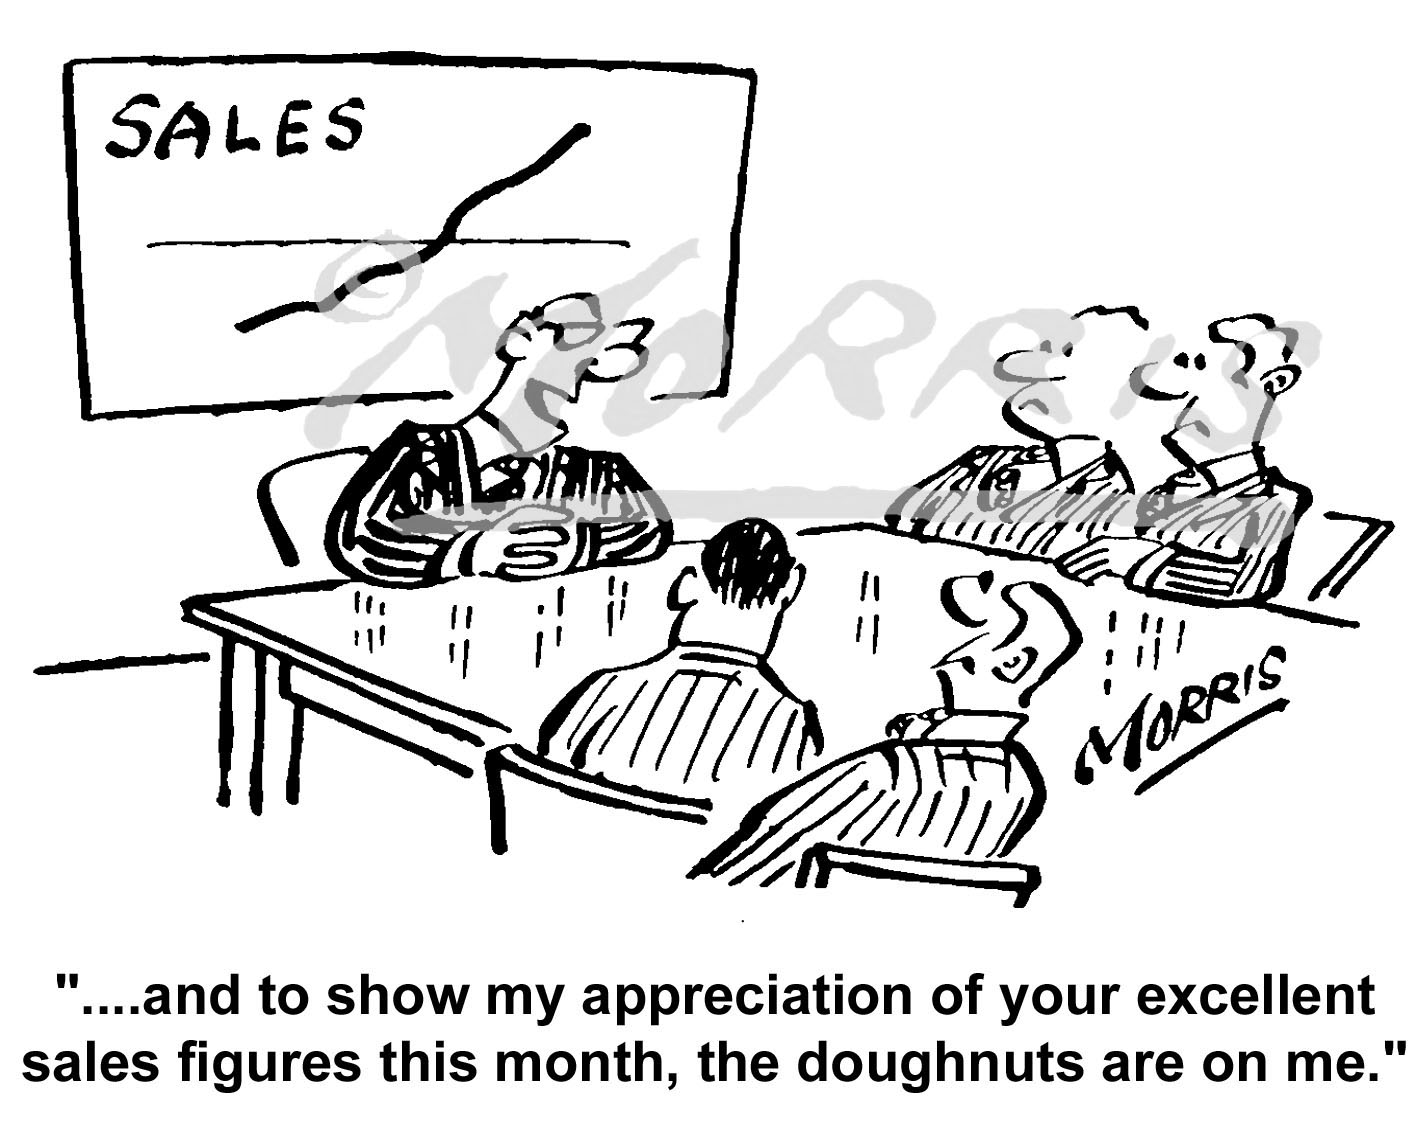 Sales manager cartoon, sales meeting cartoon Ref: 1699bw